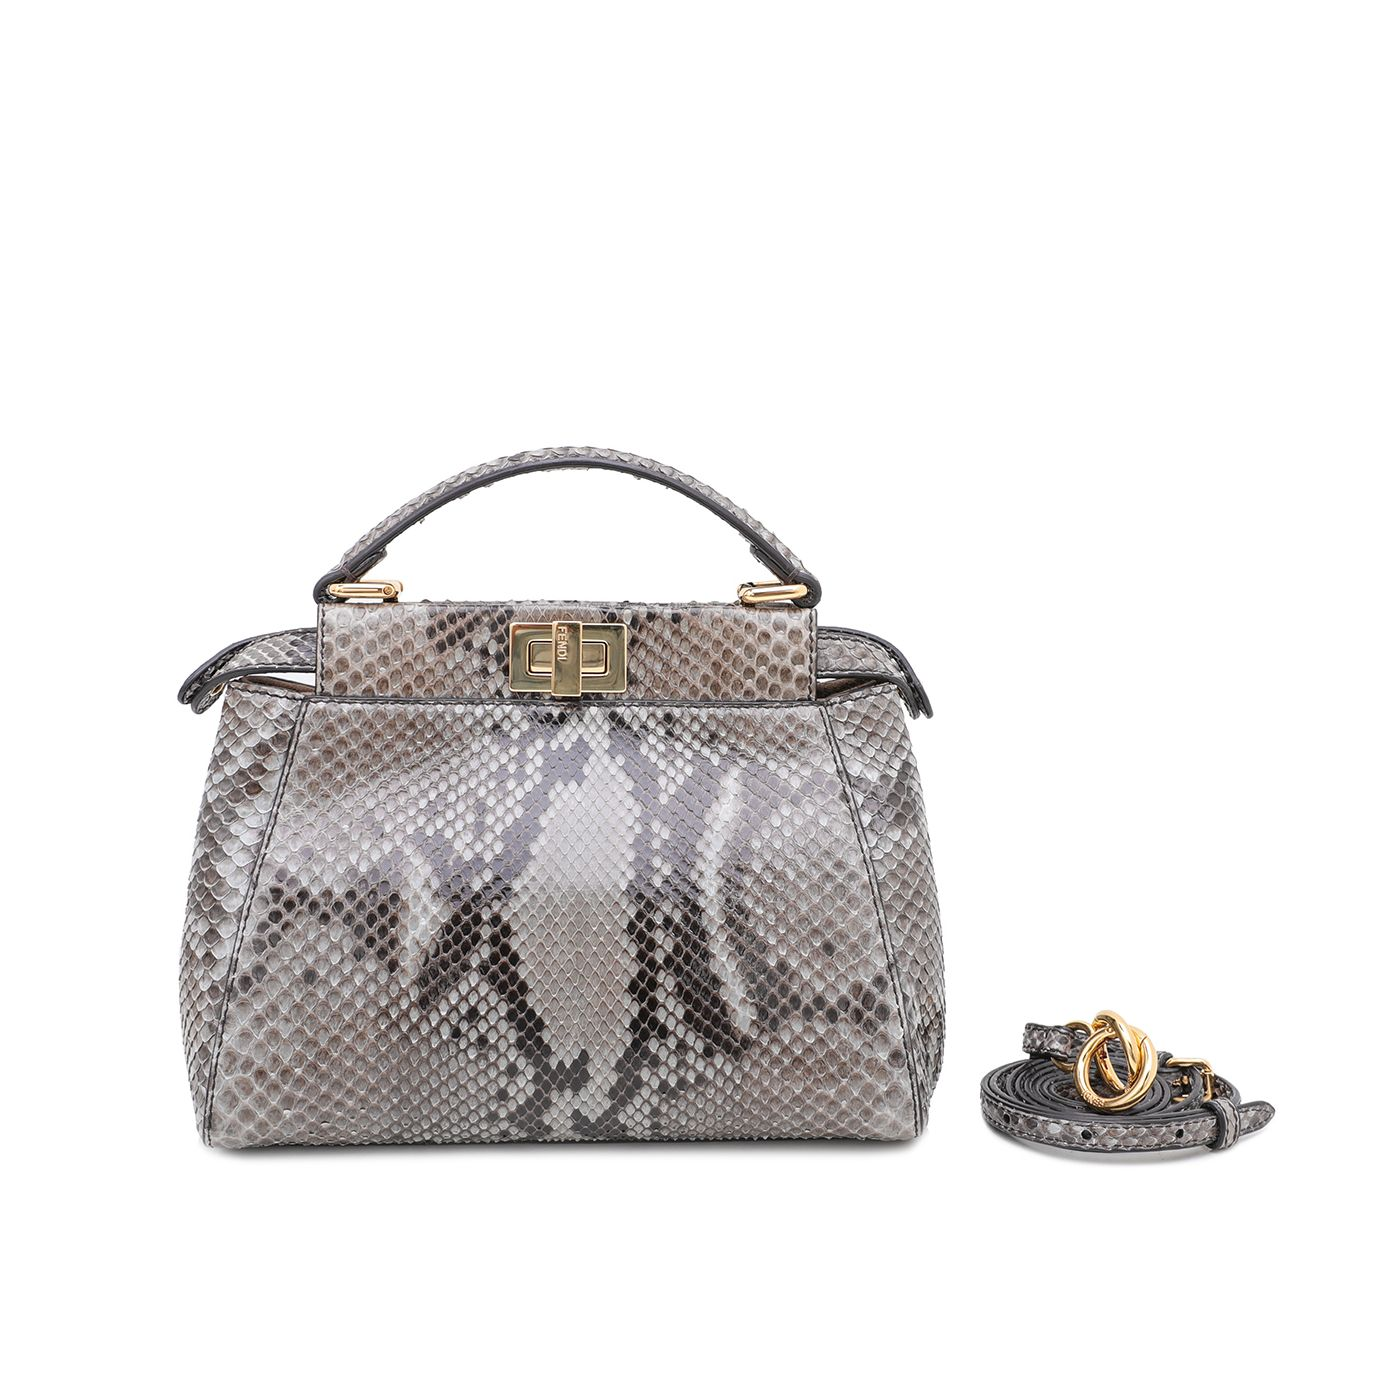 Fendi Gray Python Peekaboo Mini Bag